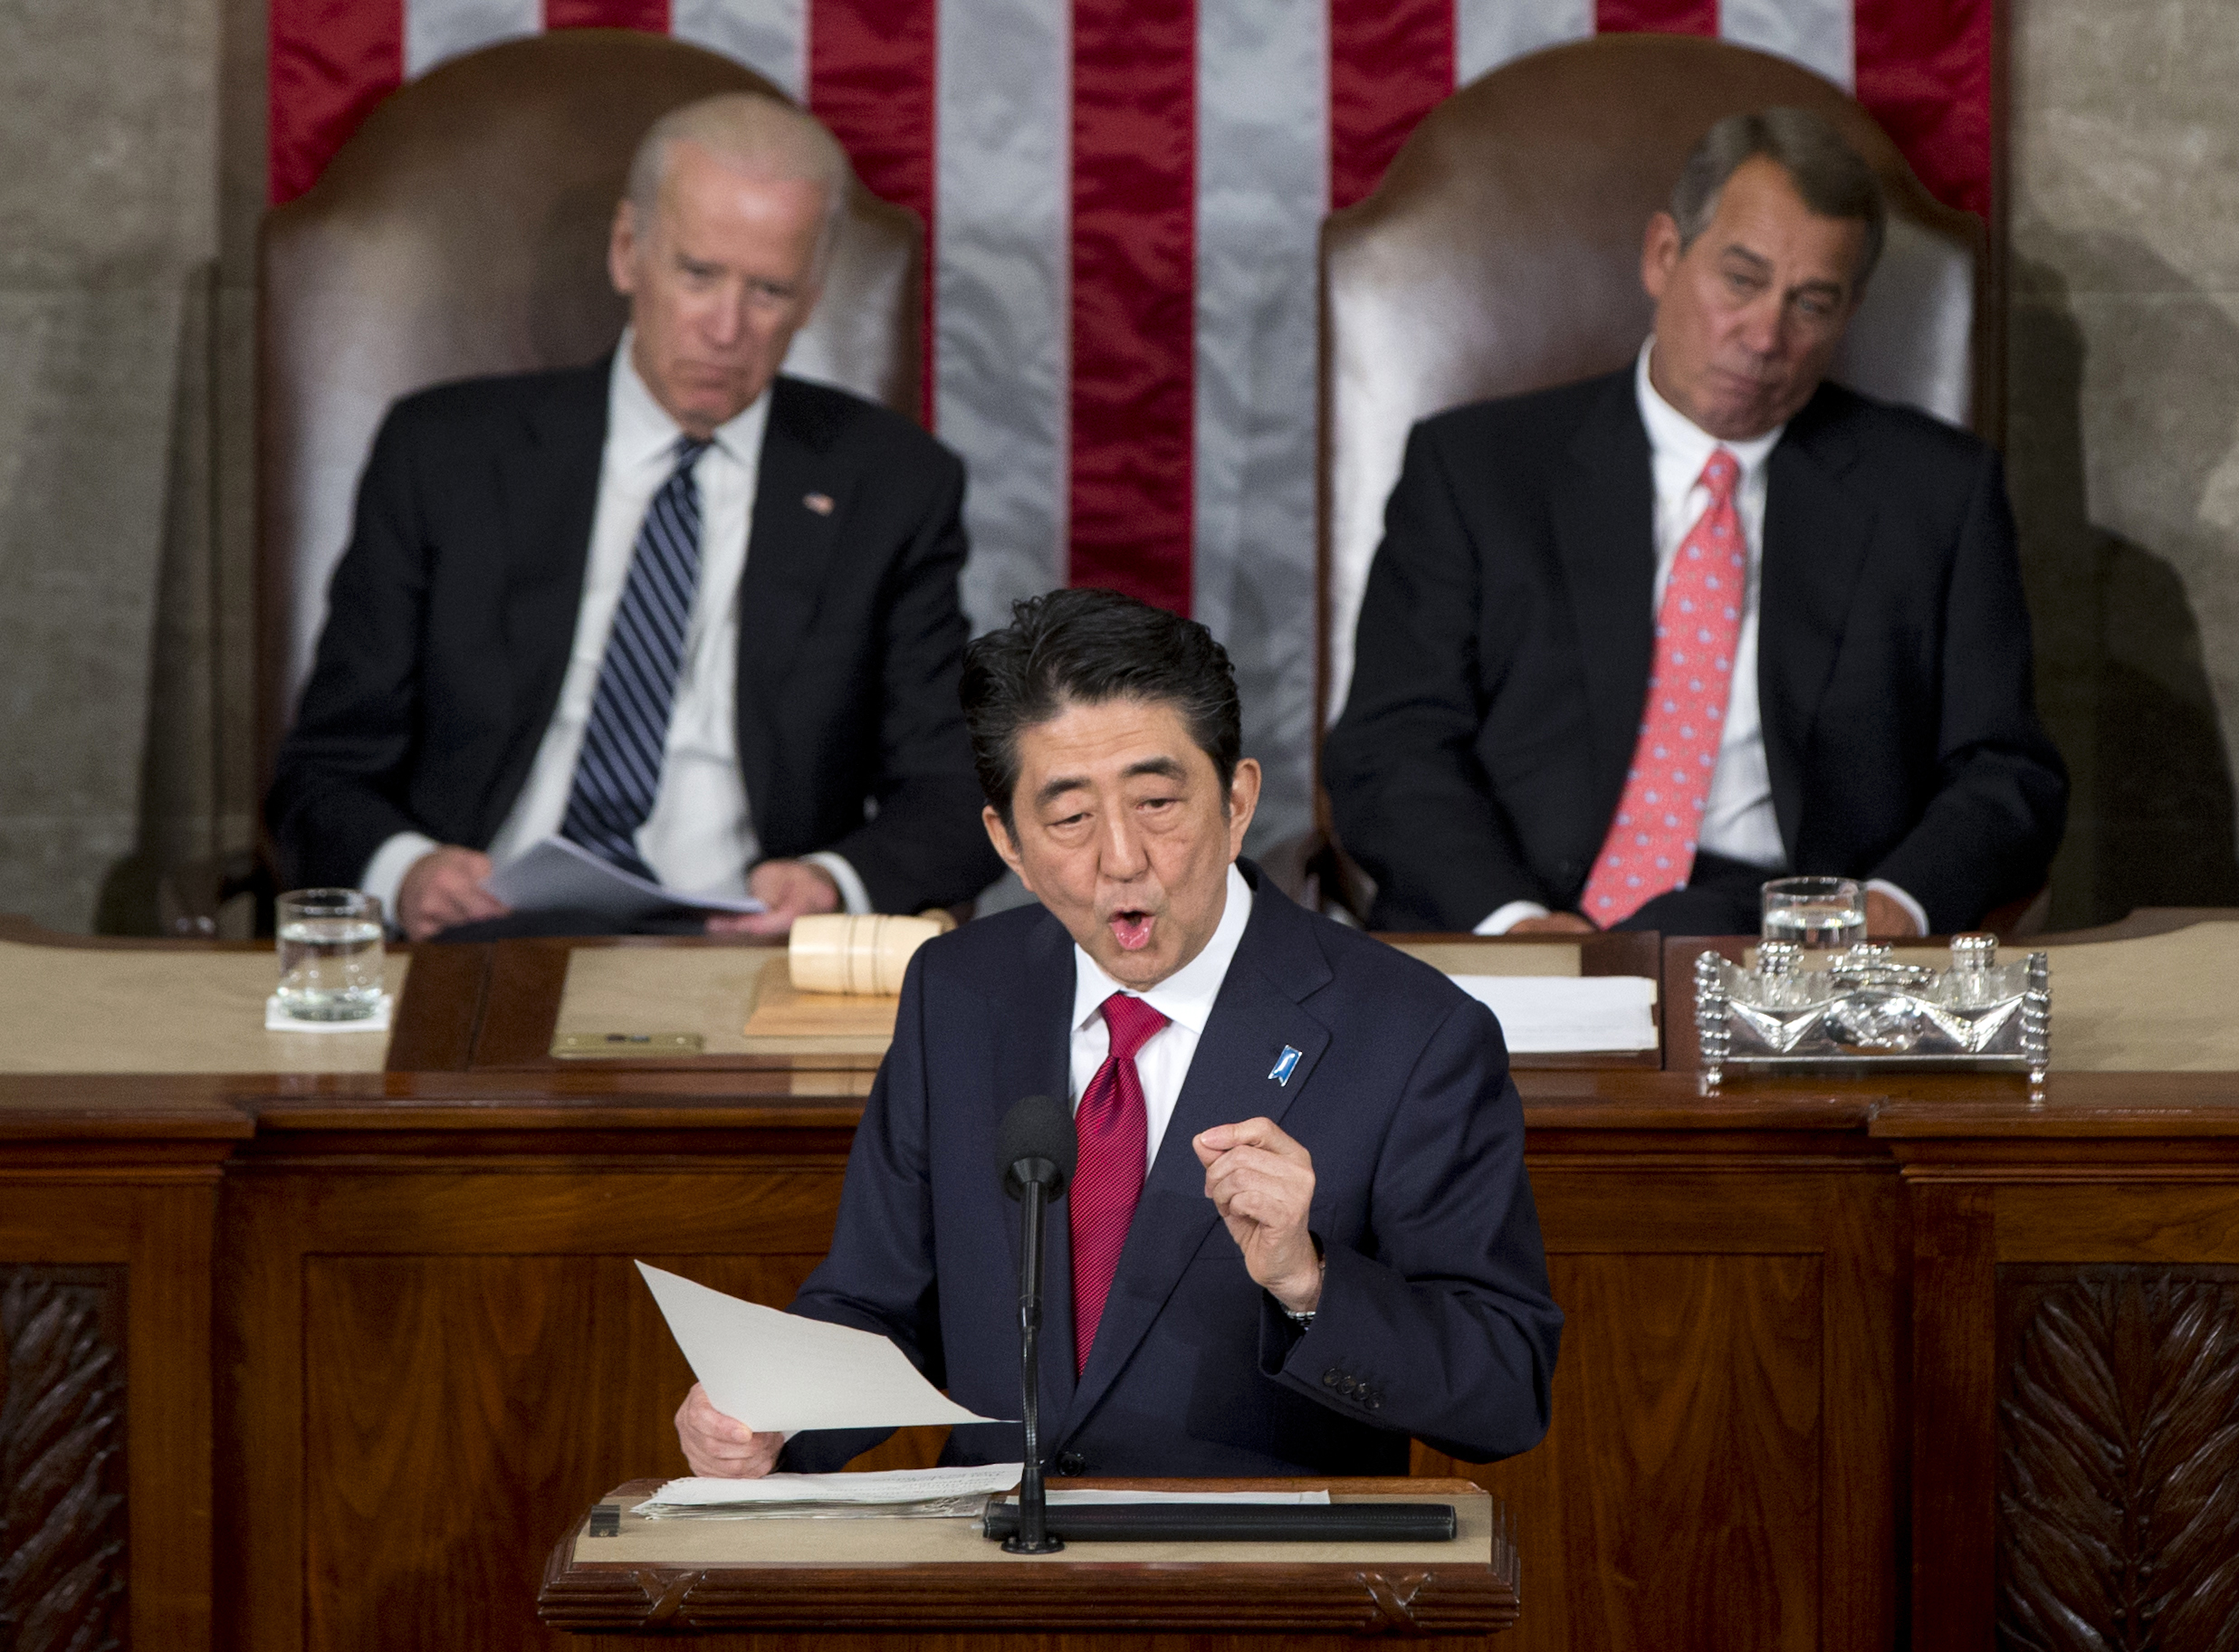 Japanese Prime Minister Shinzo Abe speaks before a joint meeting of Congress, April 29, 2015, on Capitol Hill in Washington.